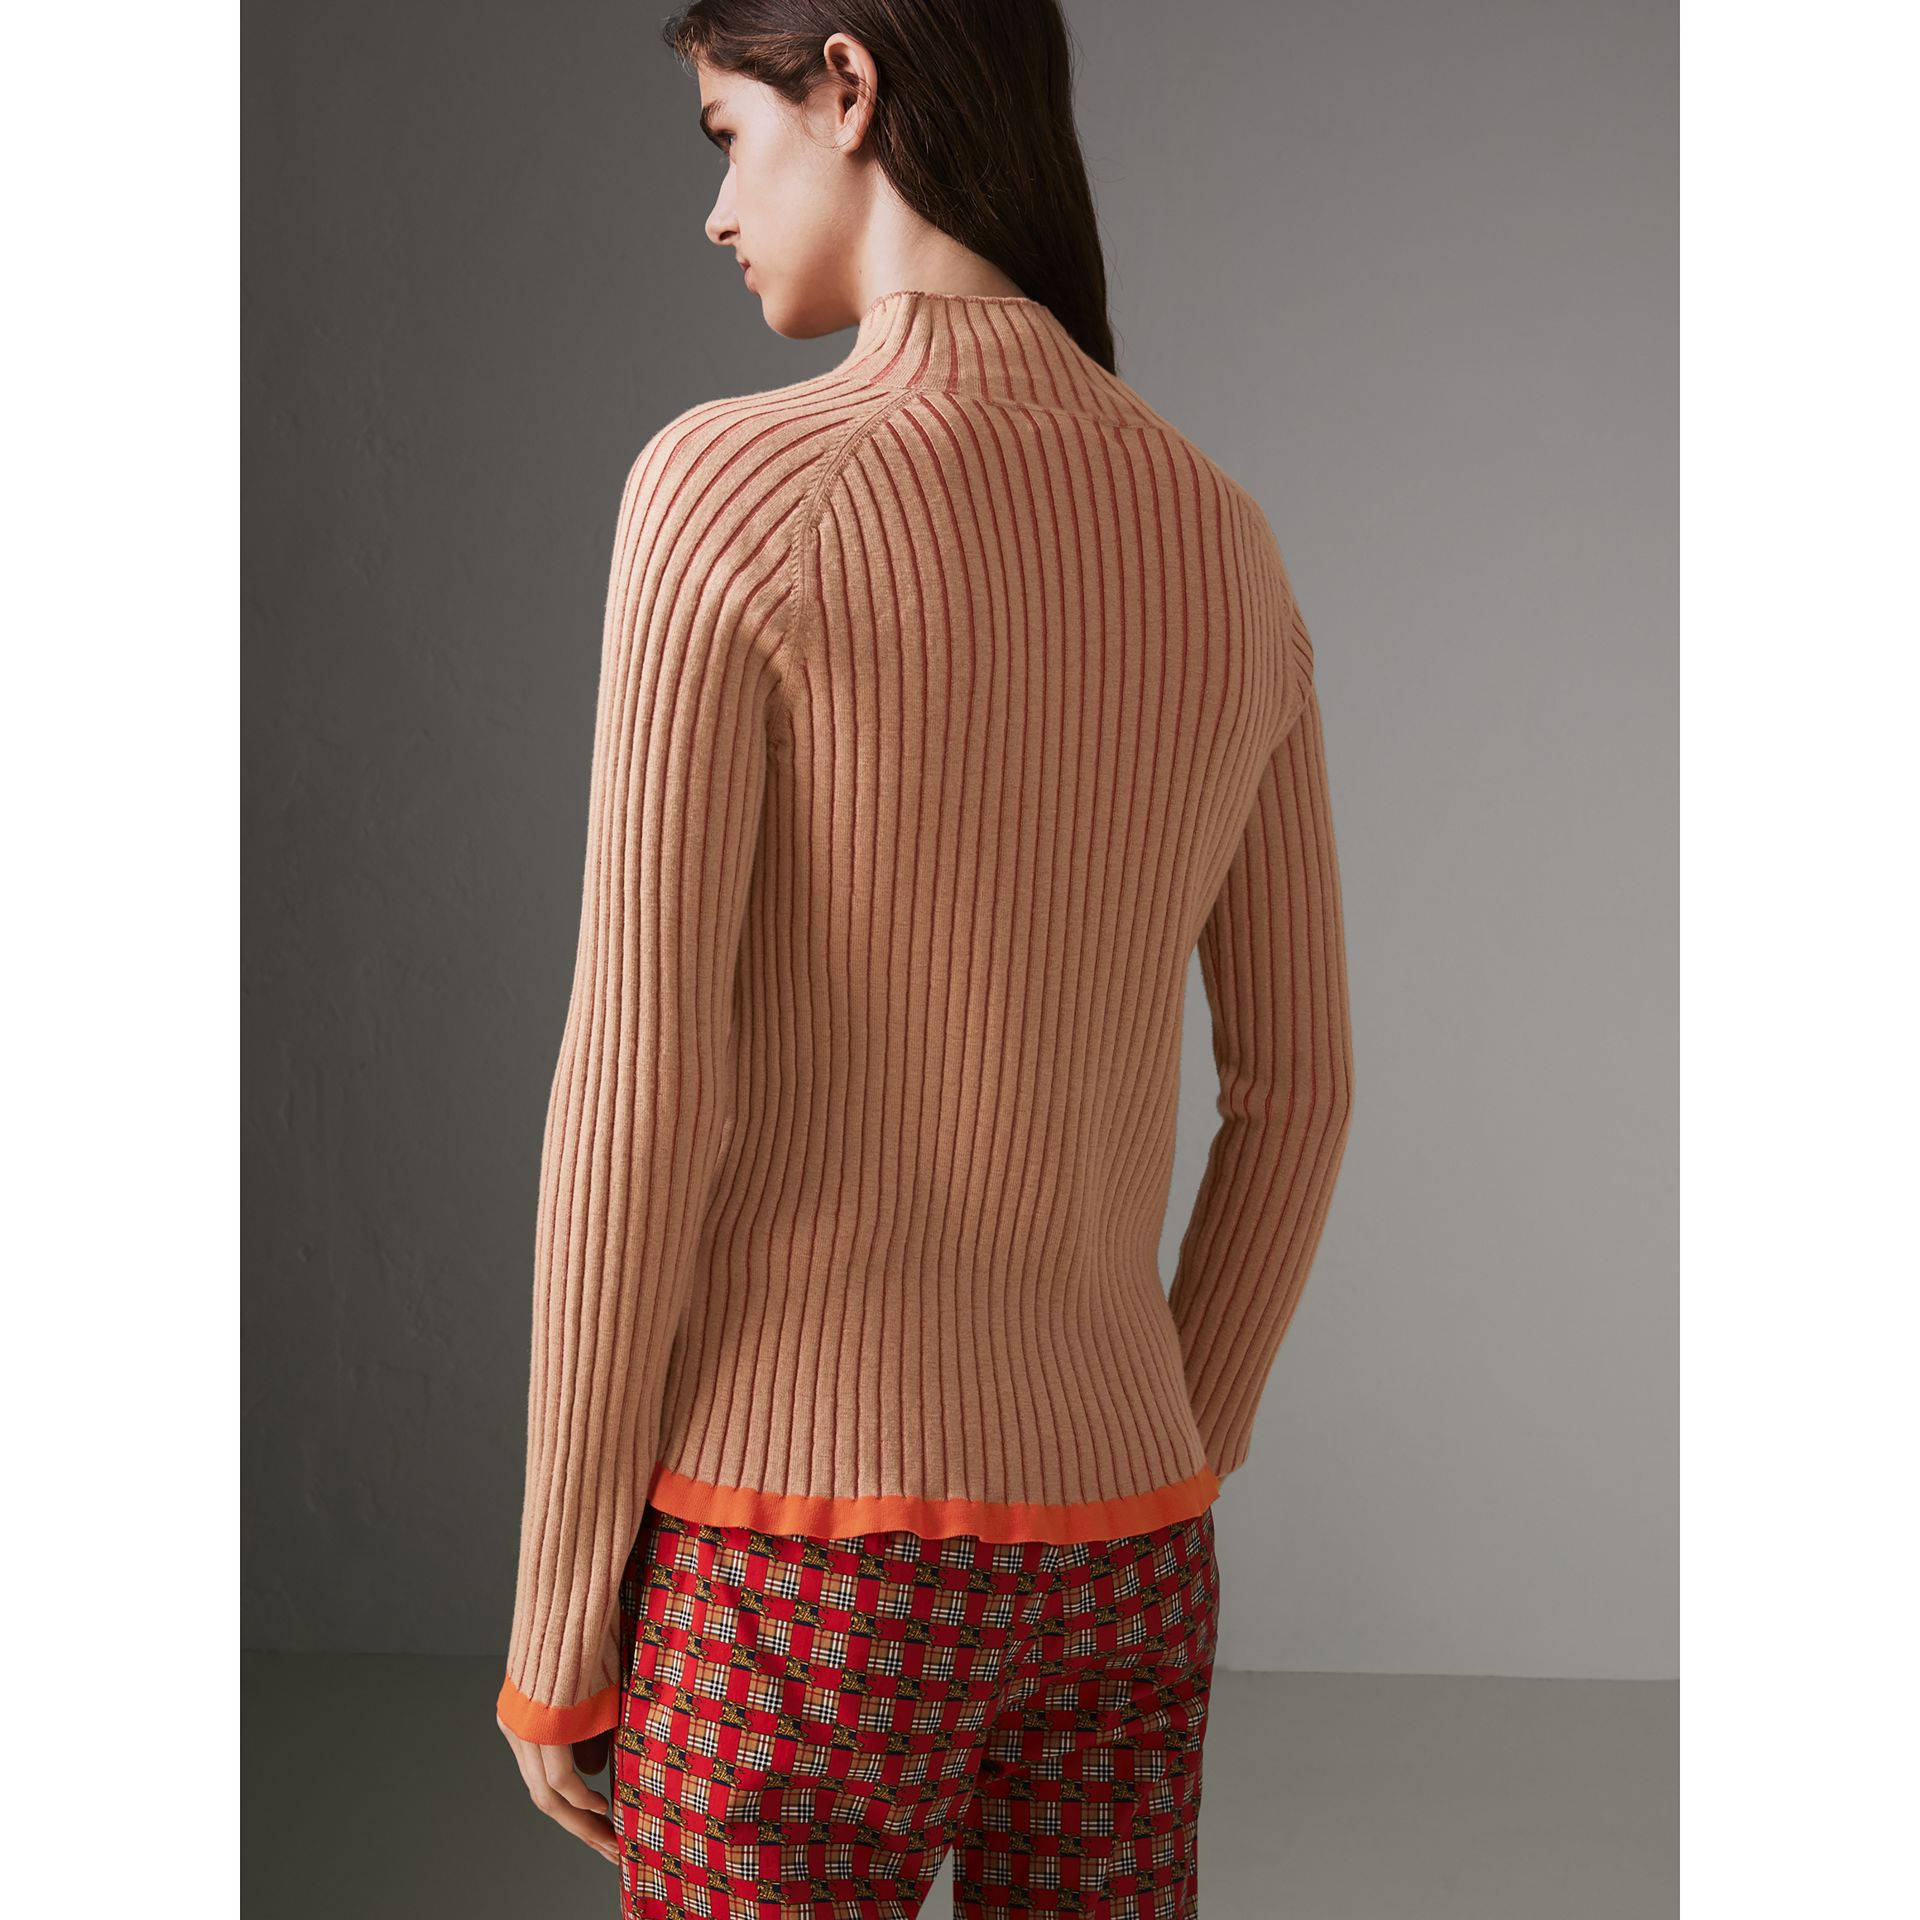 Silk Cashmere Turtleneck Sweater in Sand Brown - Women | Burberry - gallery image 2